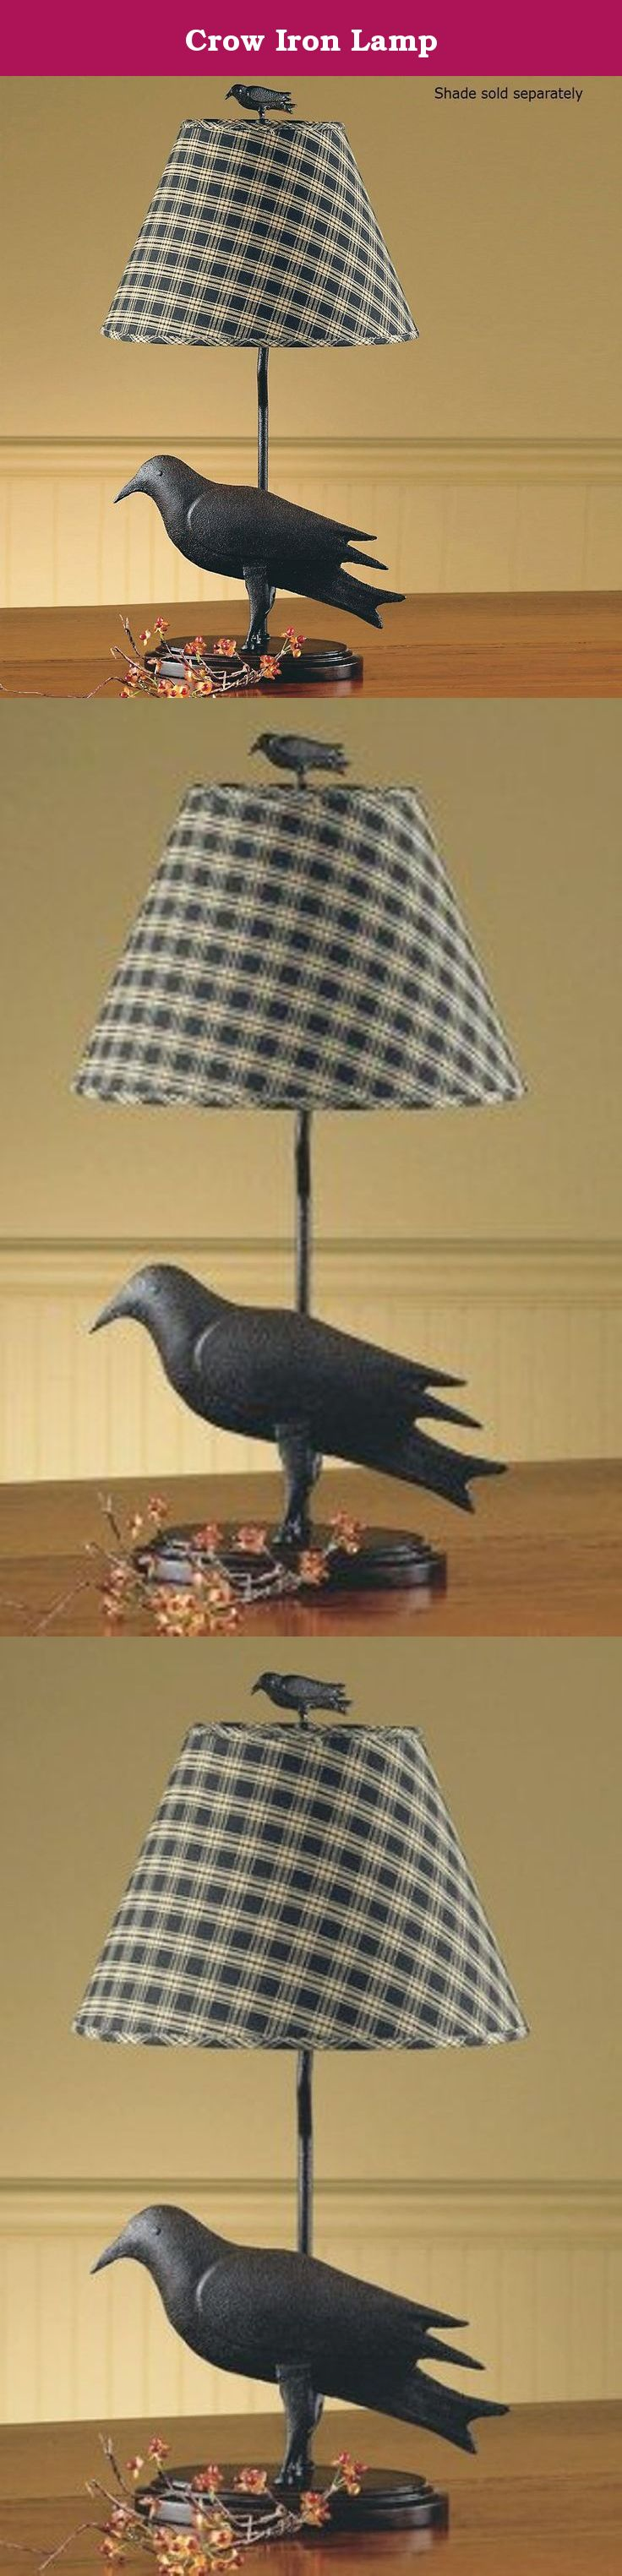 """Crow Iron Lamp. Crow Iron Lamp 20-1/2"""" Tall x 8-1/4"""" Wide x 5-1/4"""" Deep (w/ crow finial) Priced and sold individually Shown with 12"""" Shade (sold separately), 60 Watt bulb Designed and manufactured by Park Designs."""